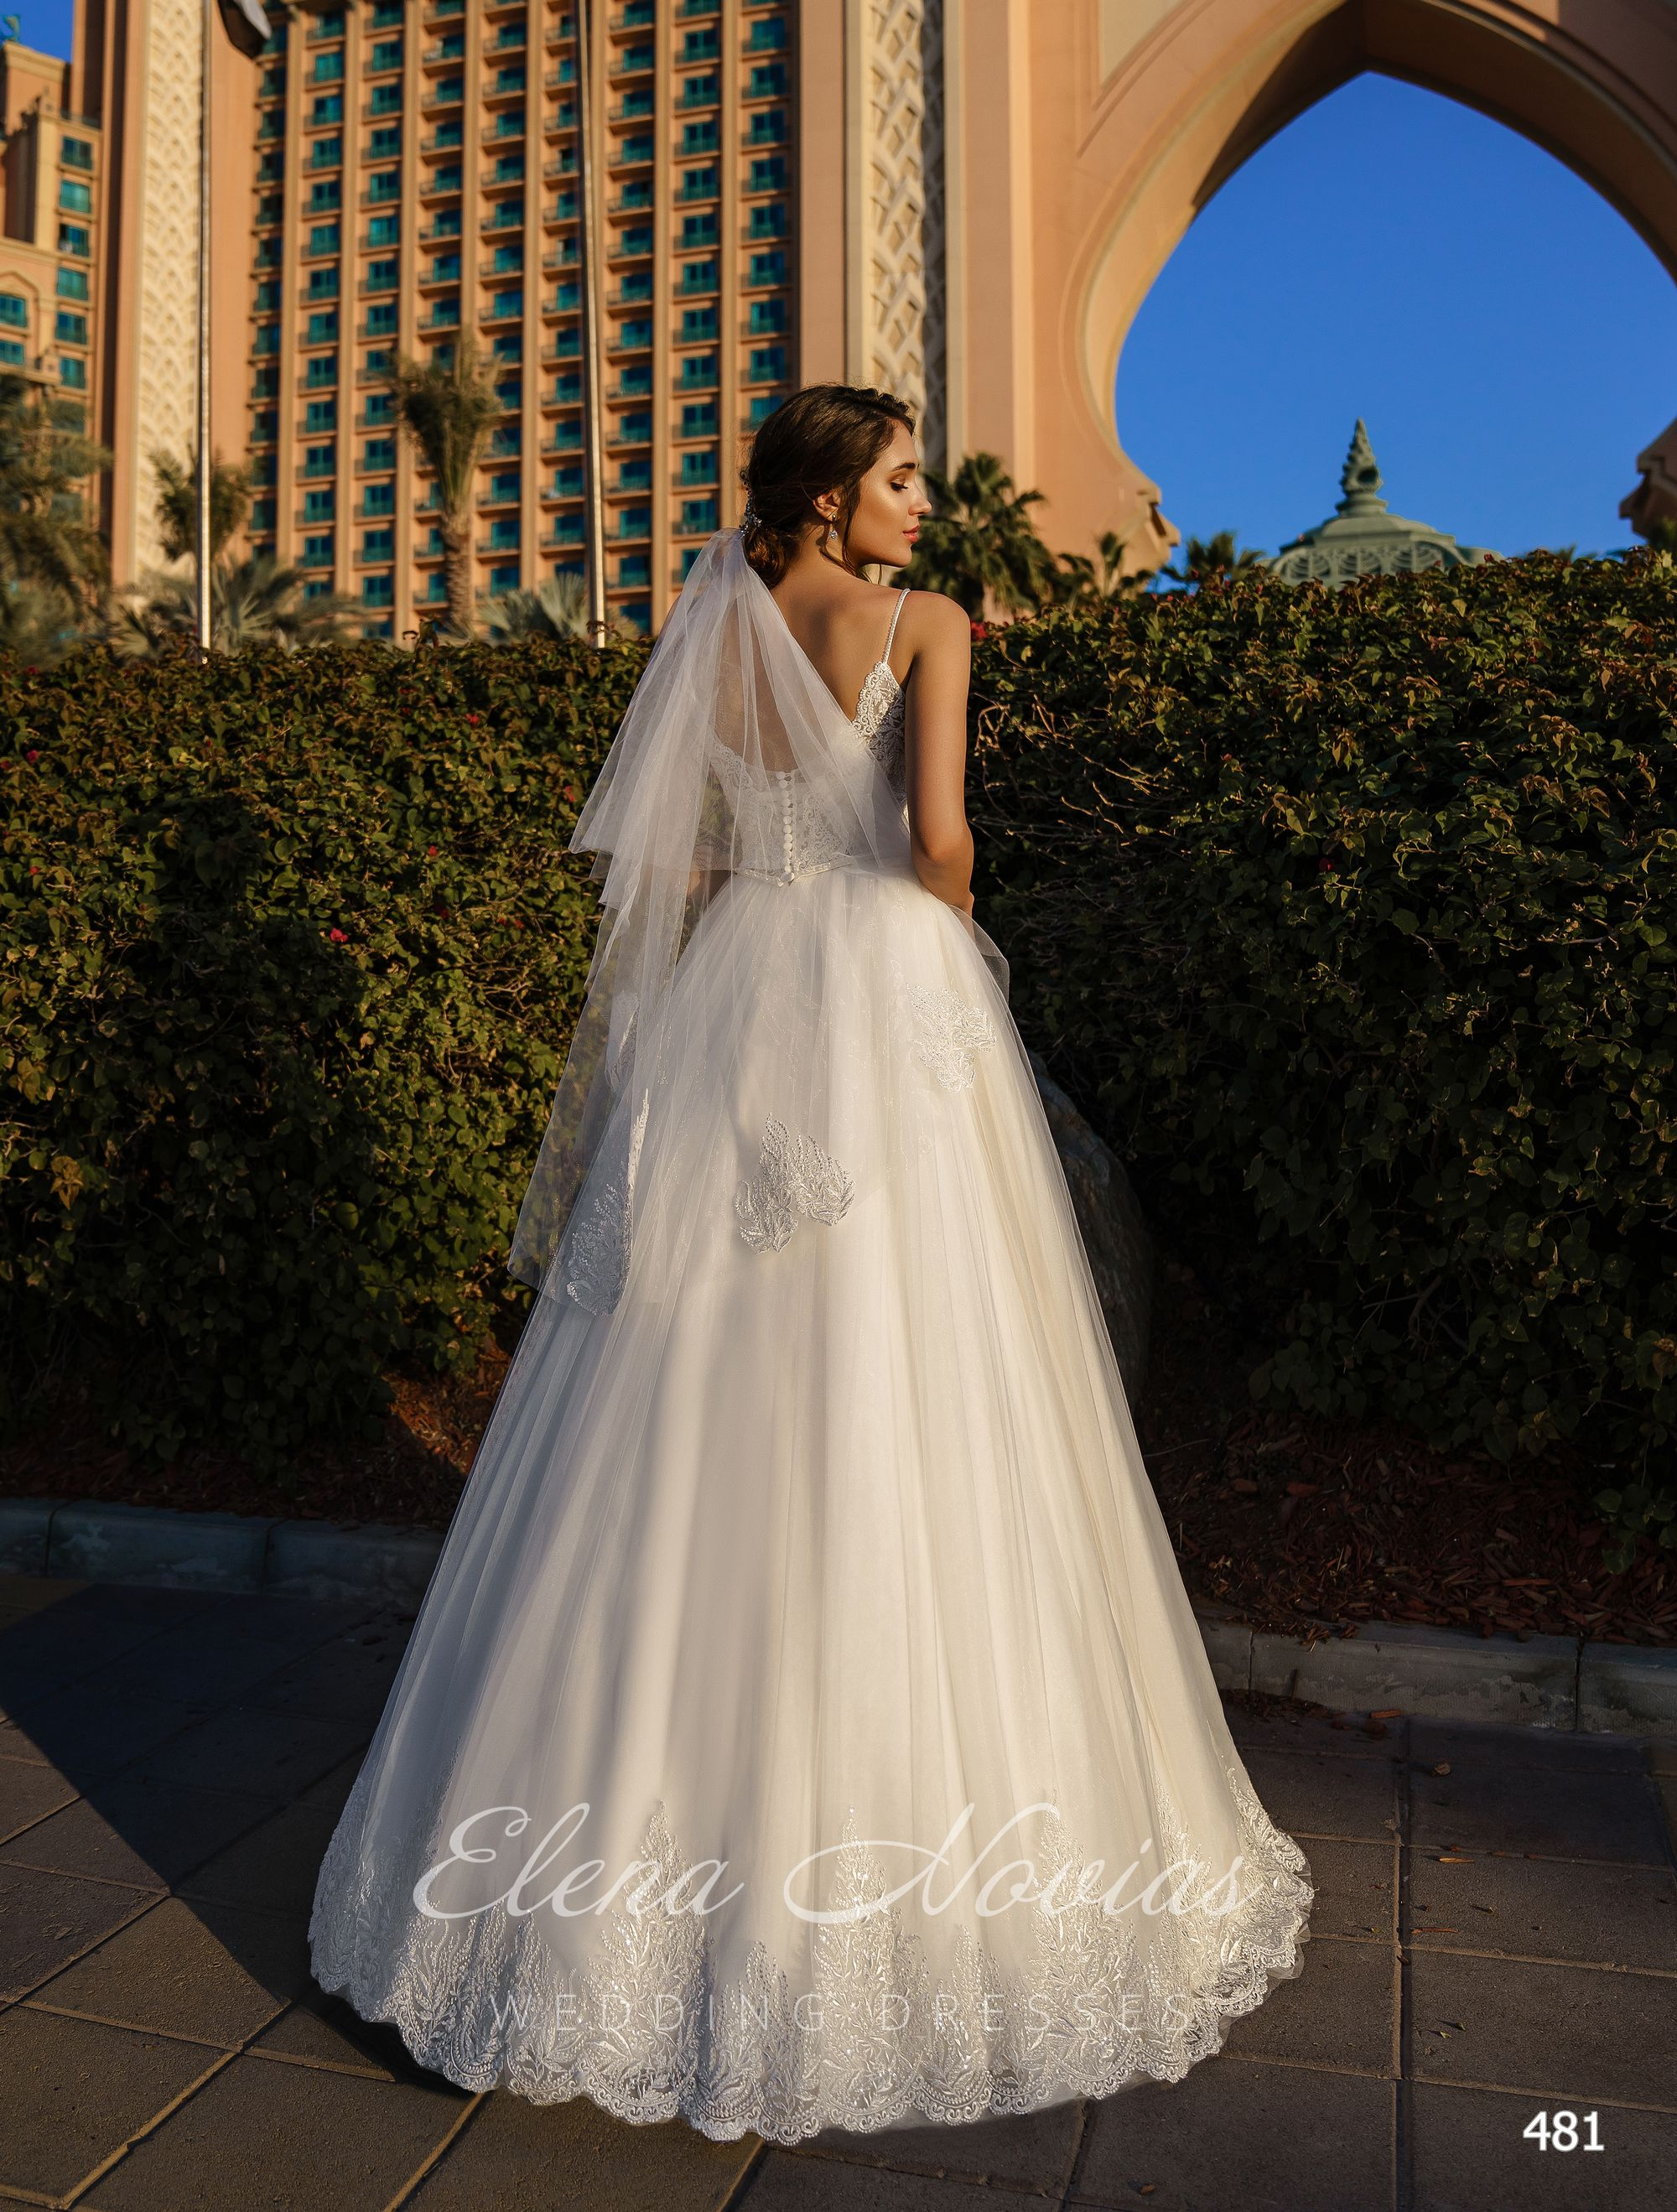 Wedding dresses 481 2